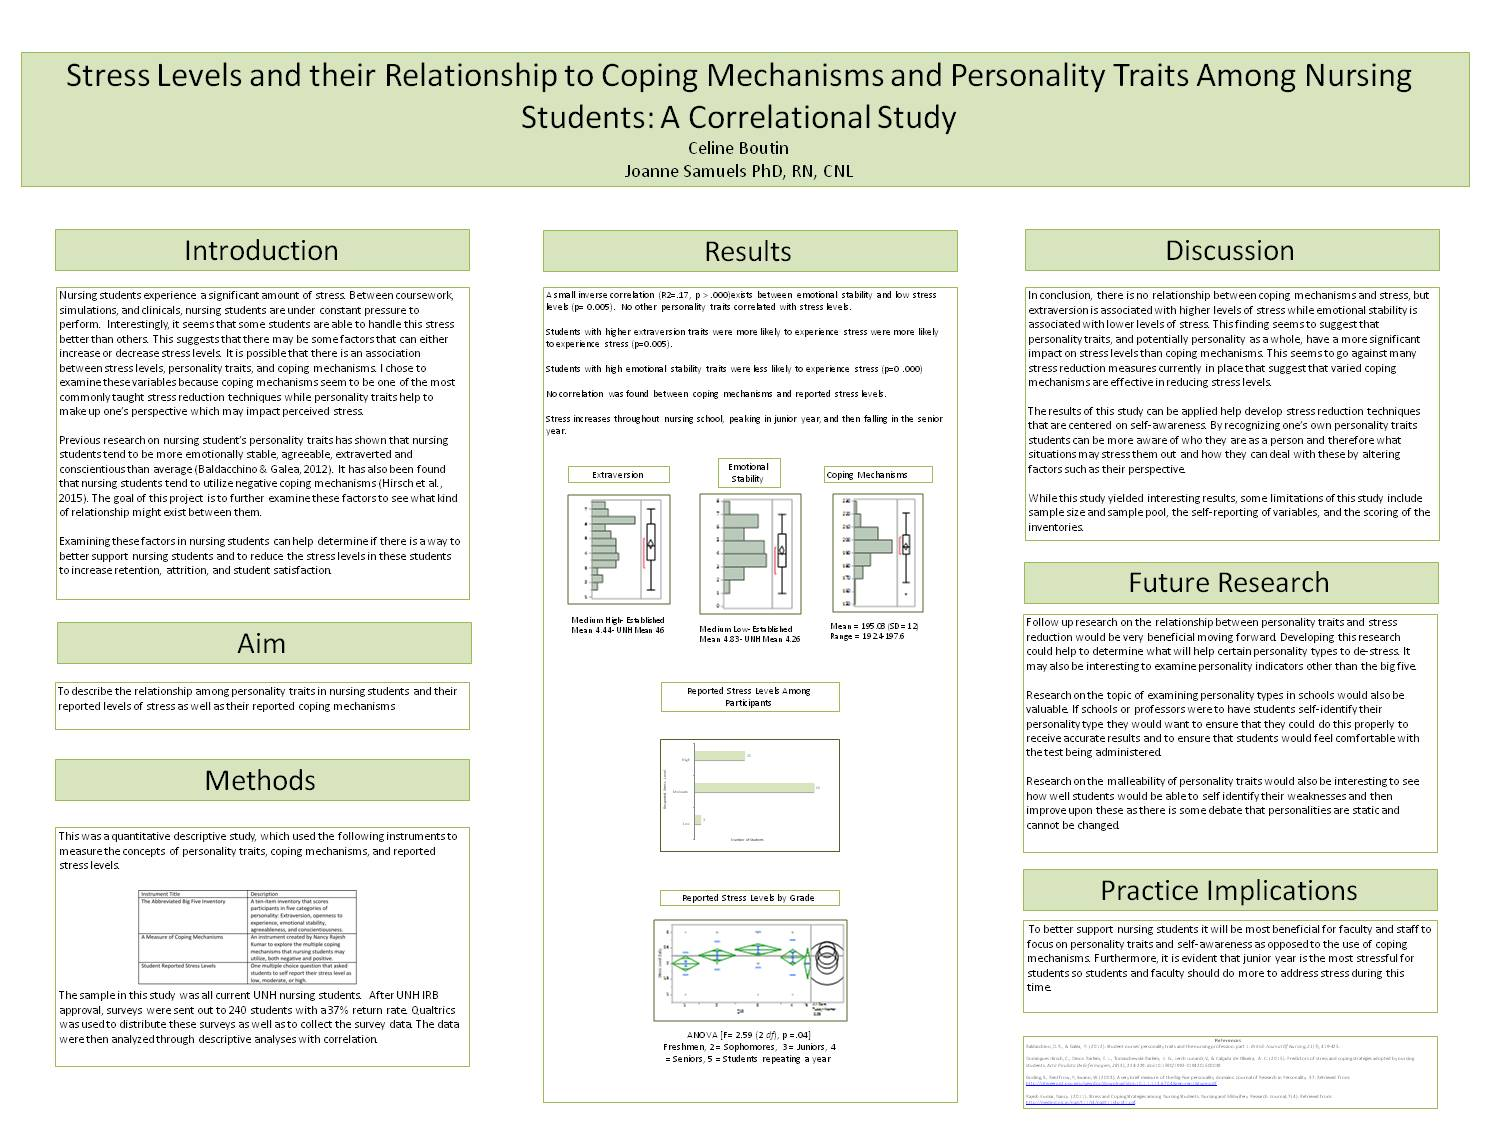 Stress Levels And Their Relationship To Personality Traits And Coping Mechanisms Among Nursing Students: A Correlational Study by cly98